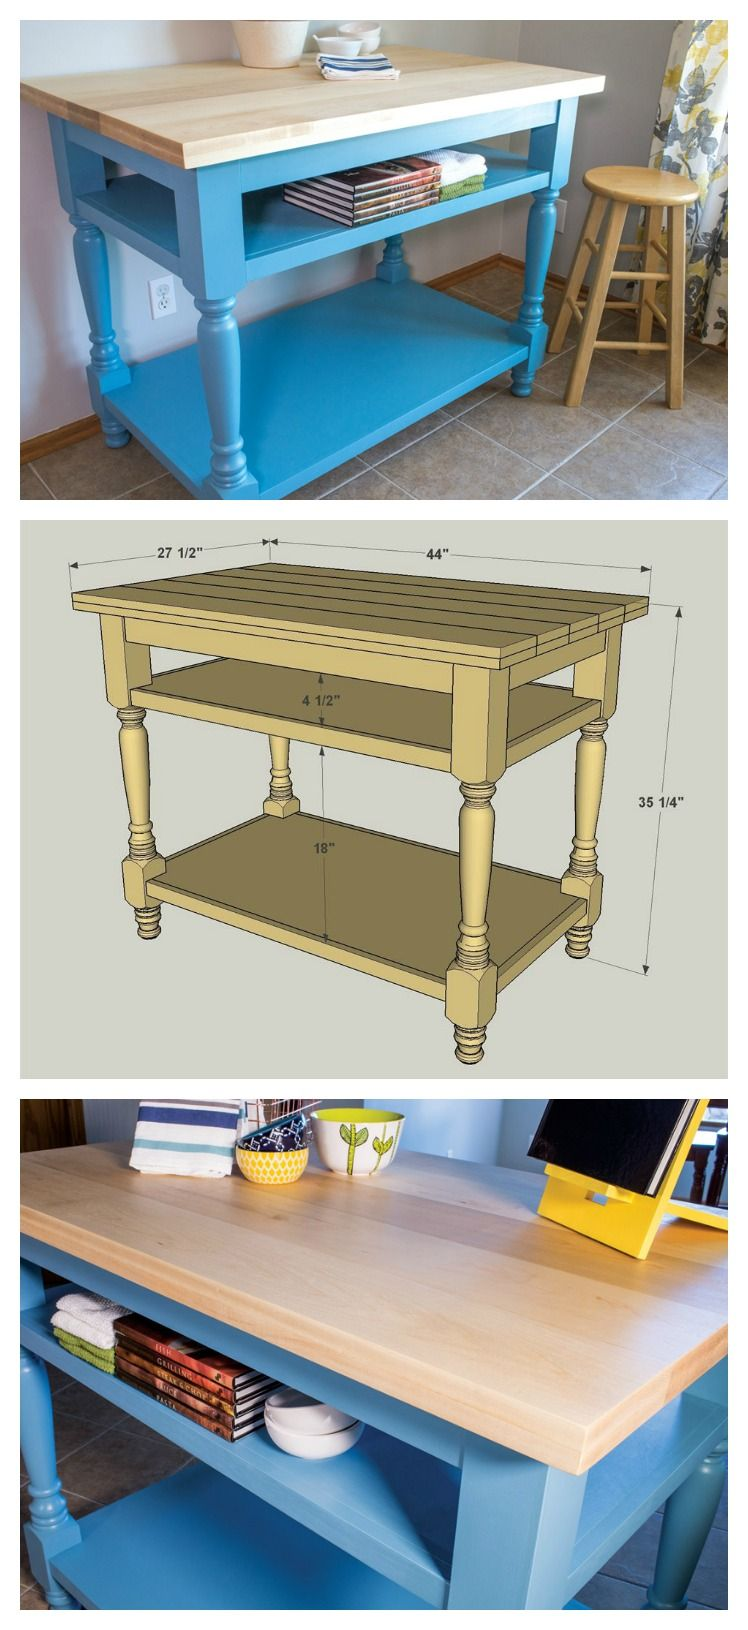 How To: Build a Faux Butcher Block Kitchen Island :: Free Plans at ...